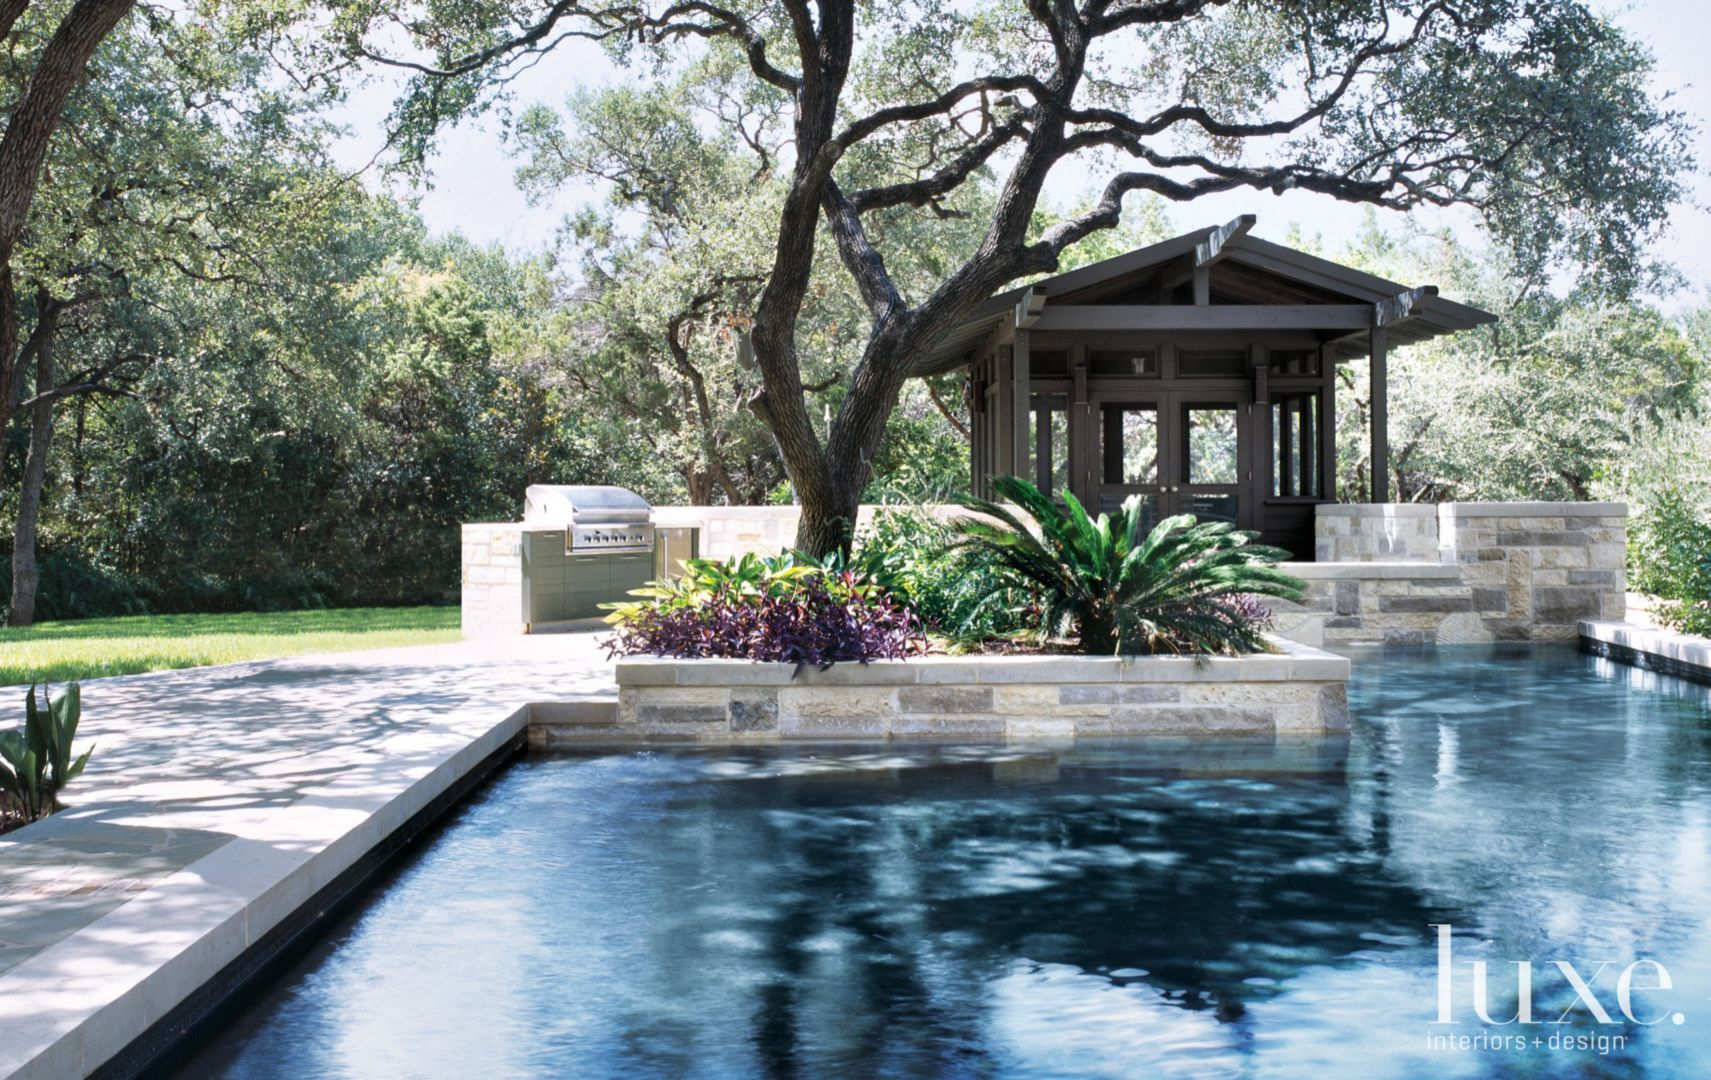 17 Pavilions and Gazebos That Are Perfect for Outdoor Living | LuxeWorthy - Design Insight from the Editors of Luxe Interiors + Design